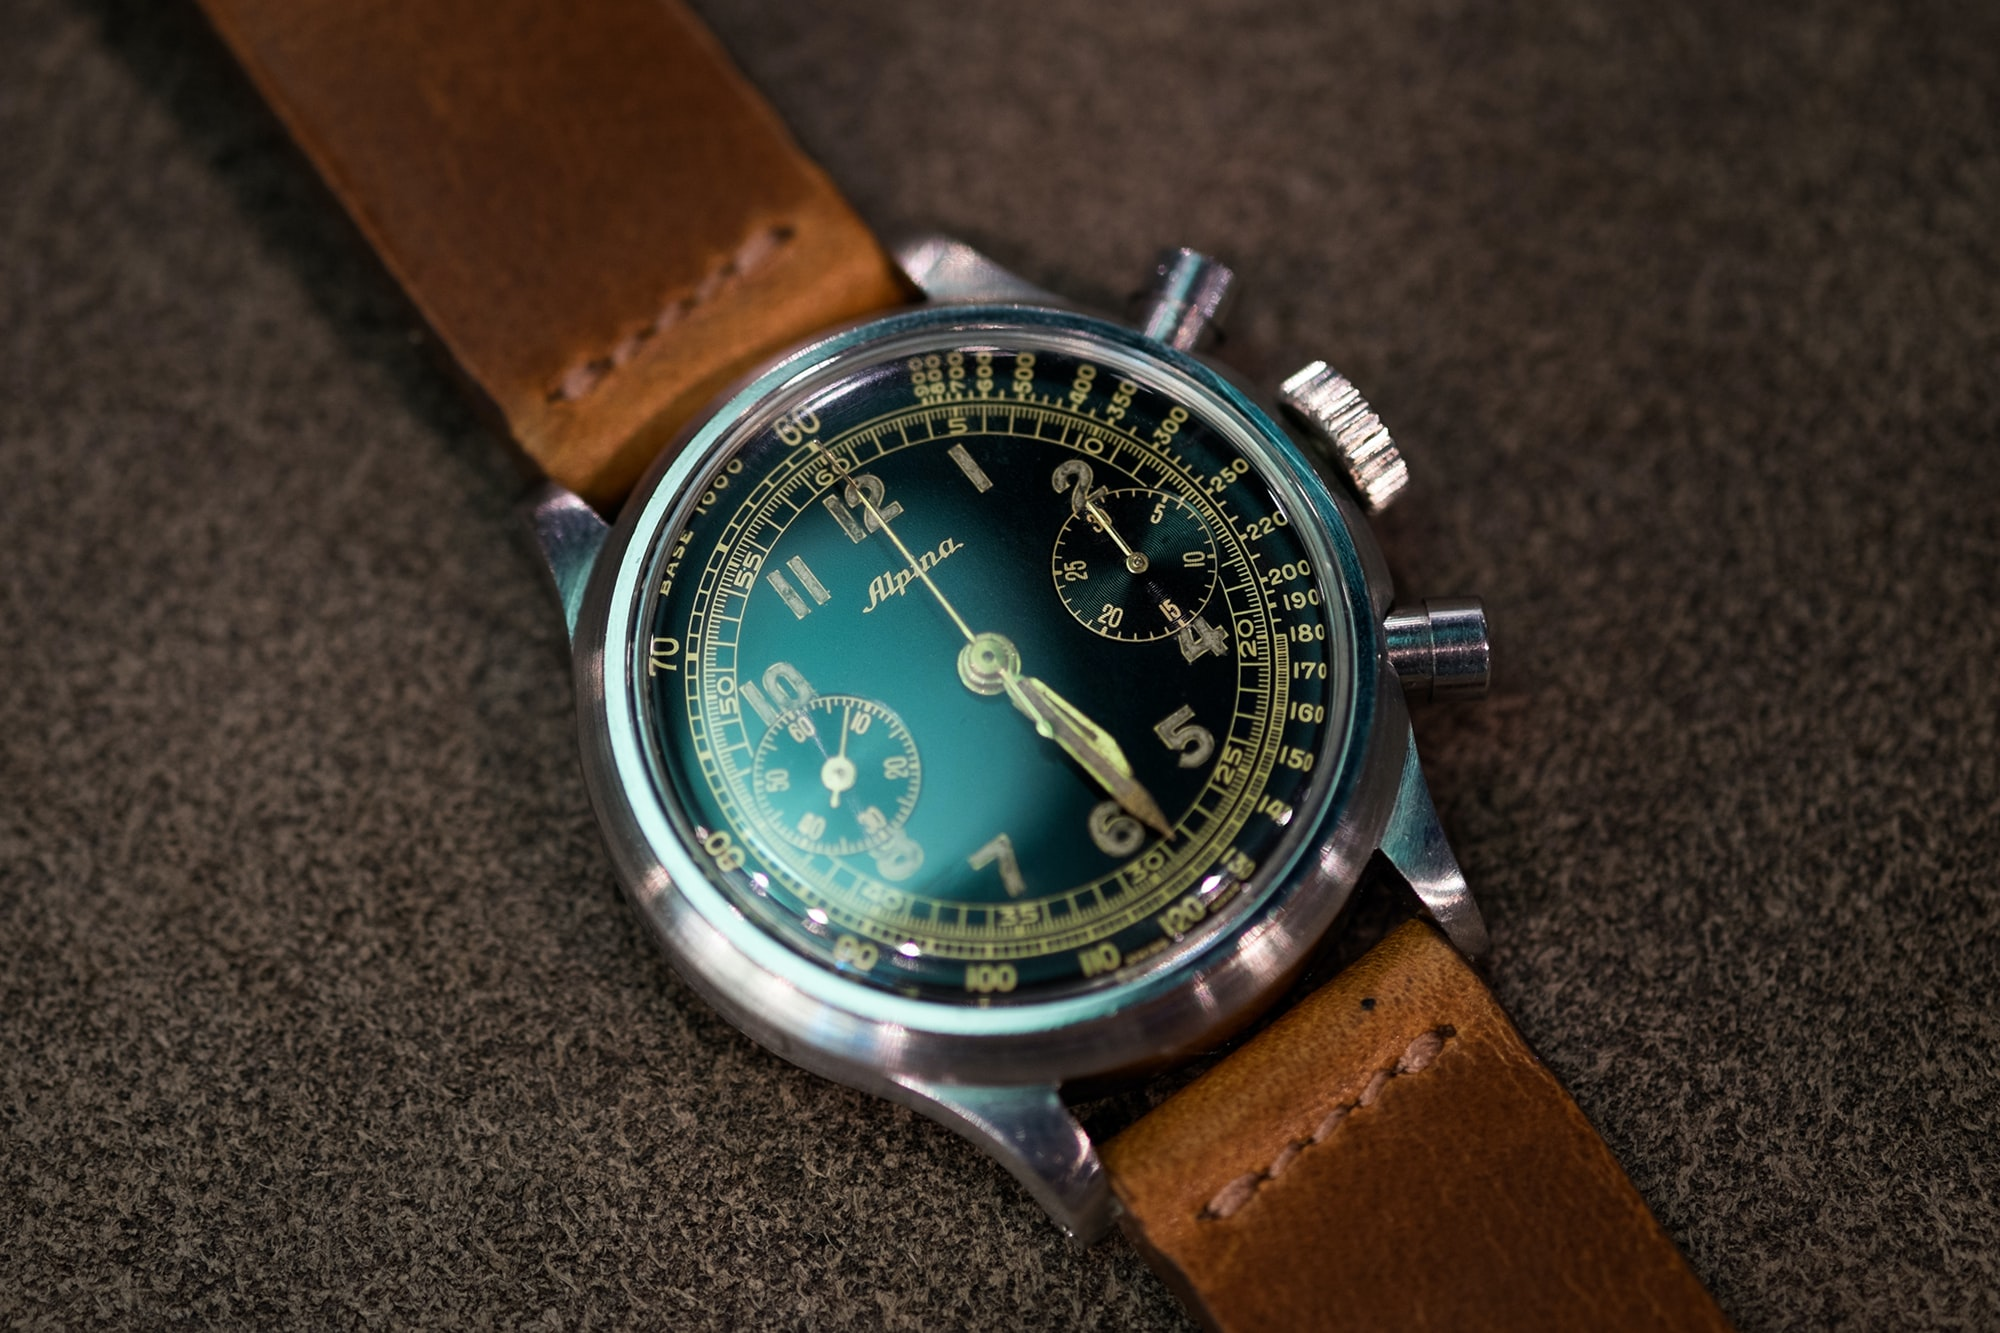 Photo Report: Watch Spotting At The HODINKEE Meet-Up In London (Plus Our Holiday 2016 Pop-Up At Harrods) Photo Report: Watch Spotting At The HODINKEE Meet-Up In London (Plus Our Holiday 2016 Pop-Up At Harrods) Hodinkee x Harroods 02